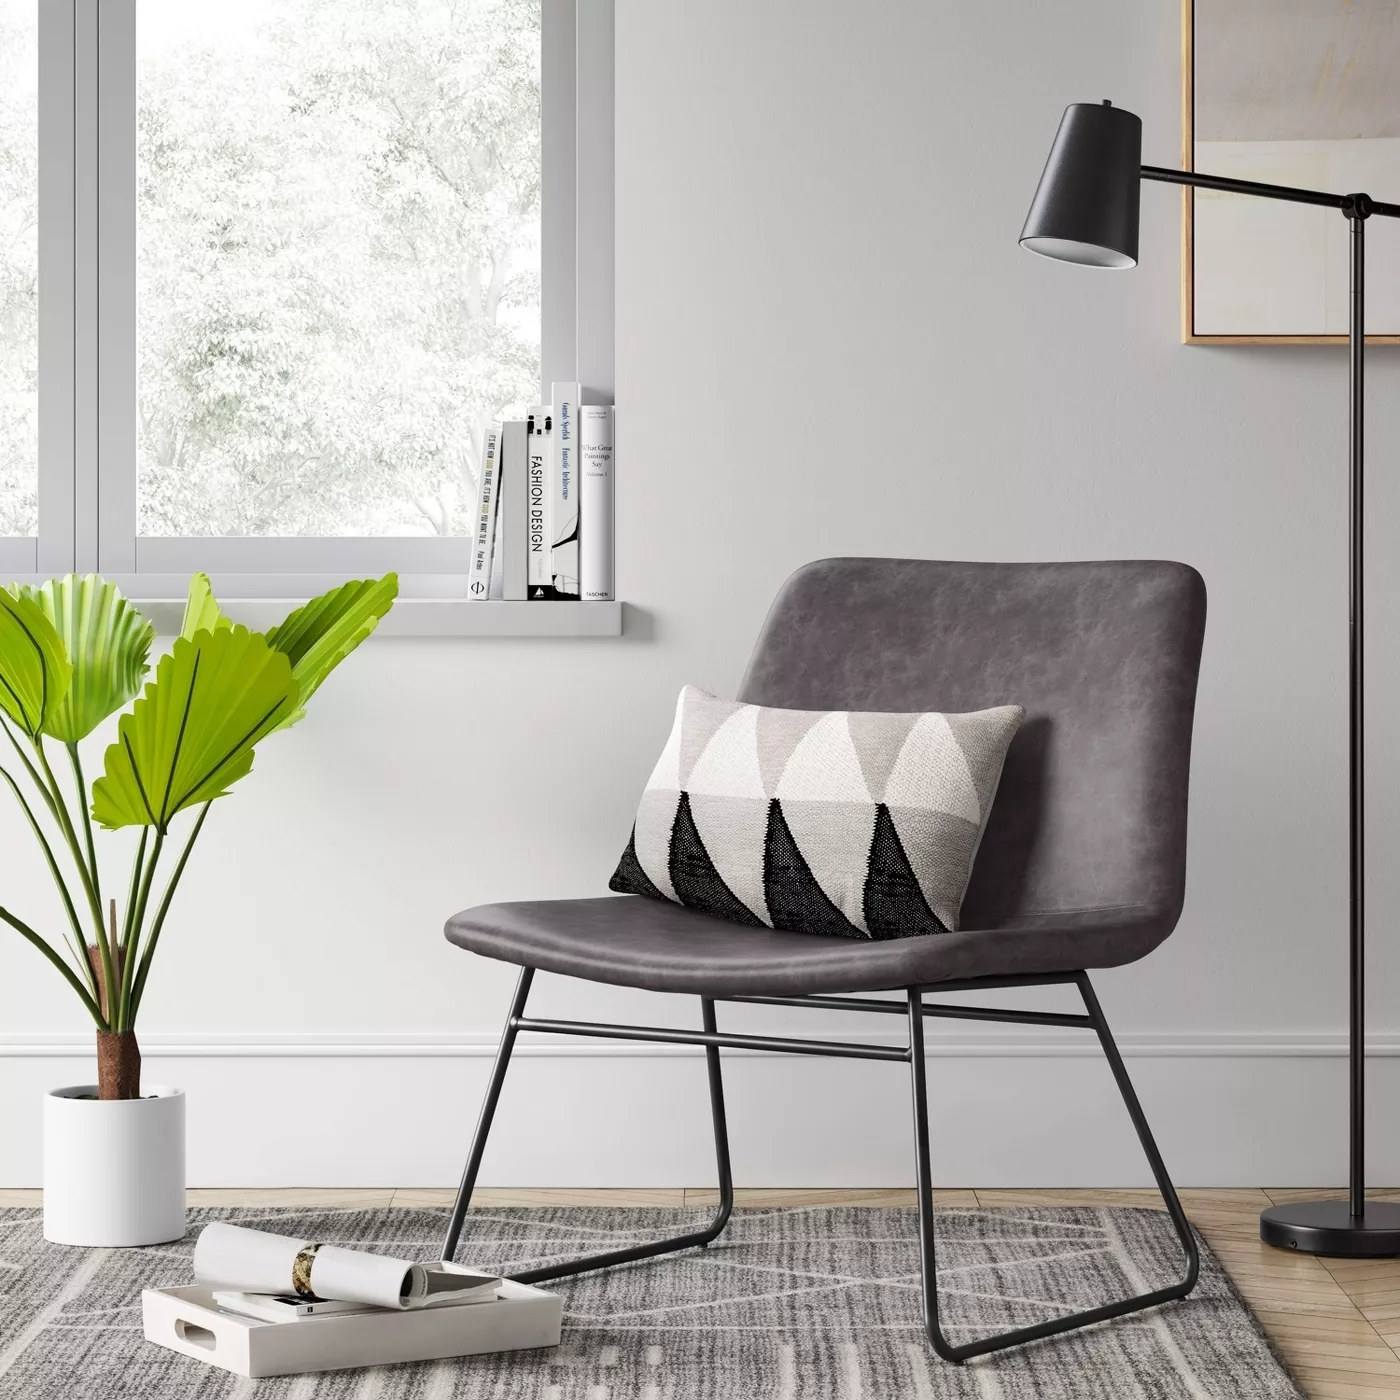 The gray accent chair in a study